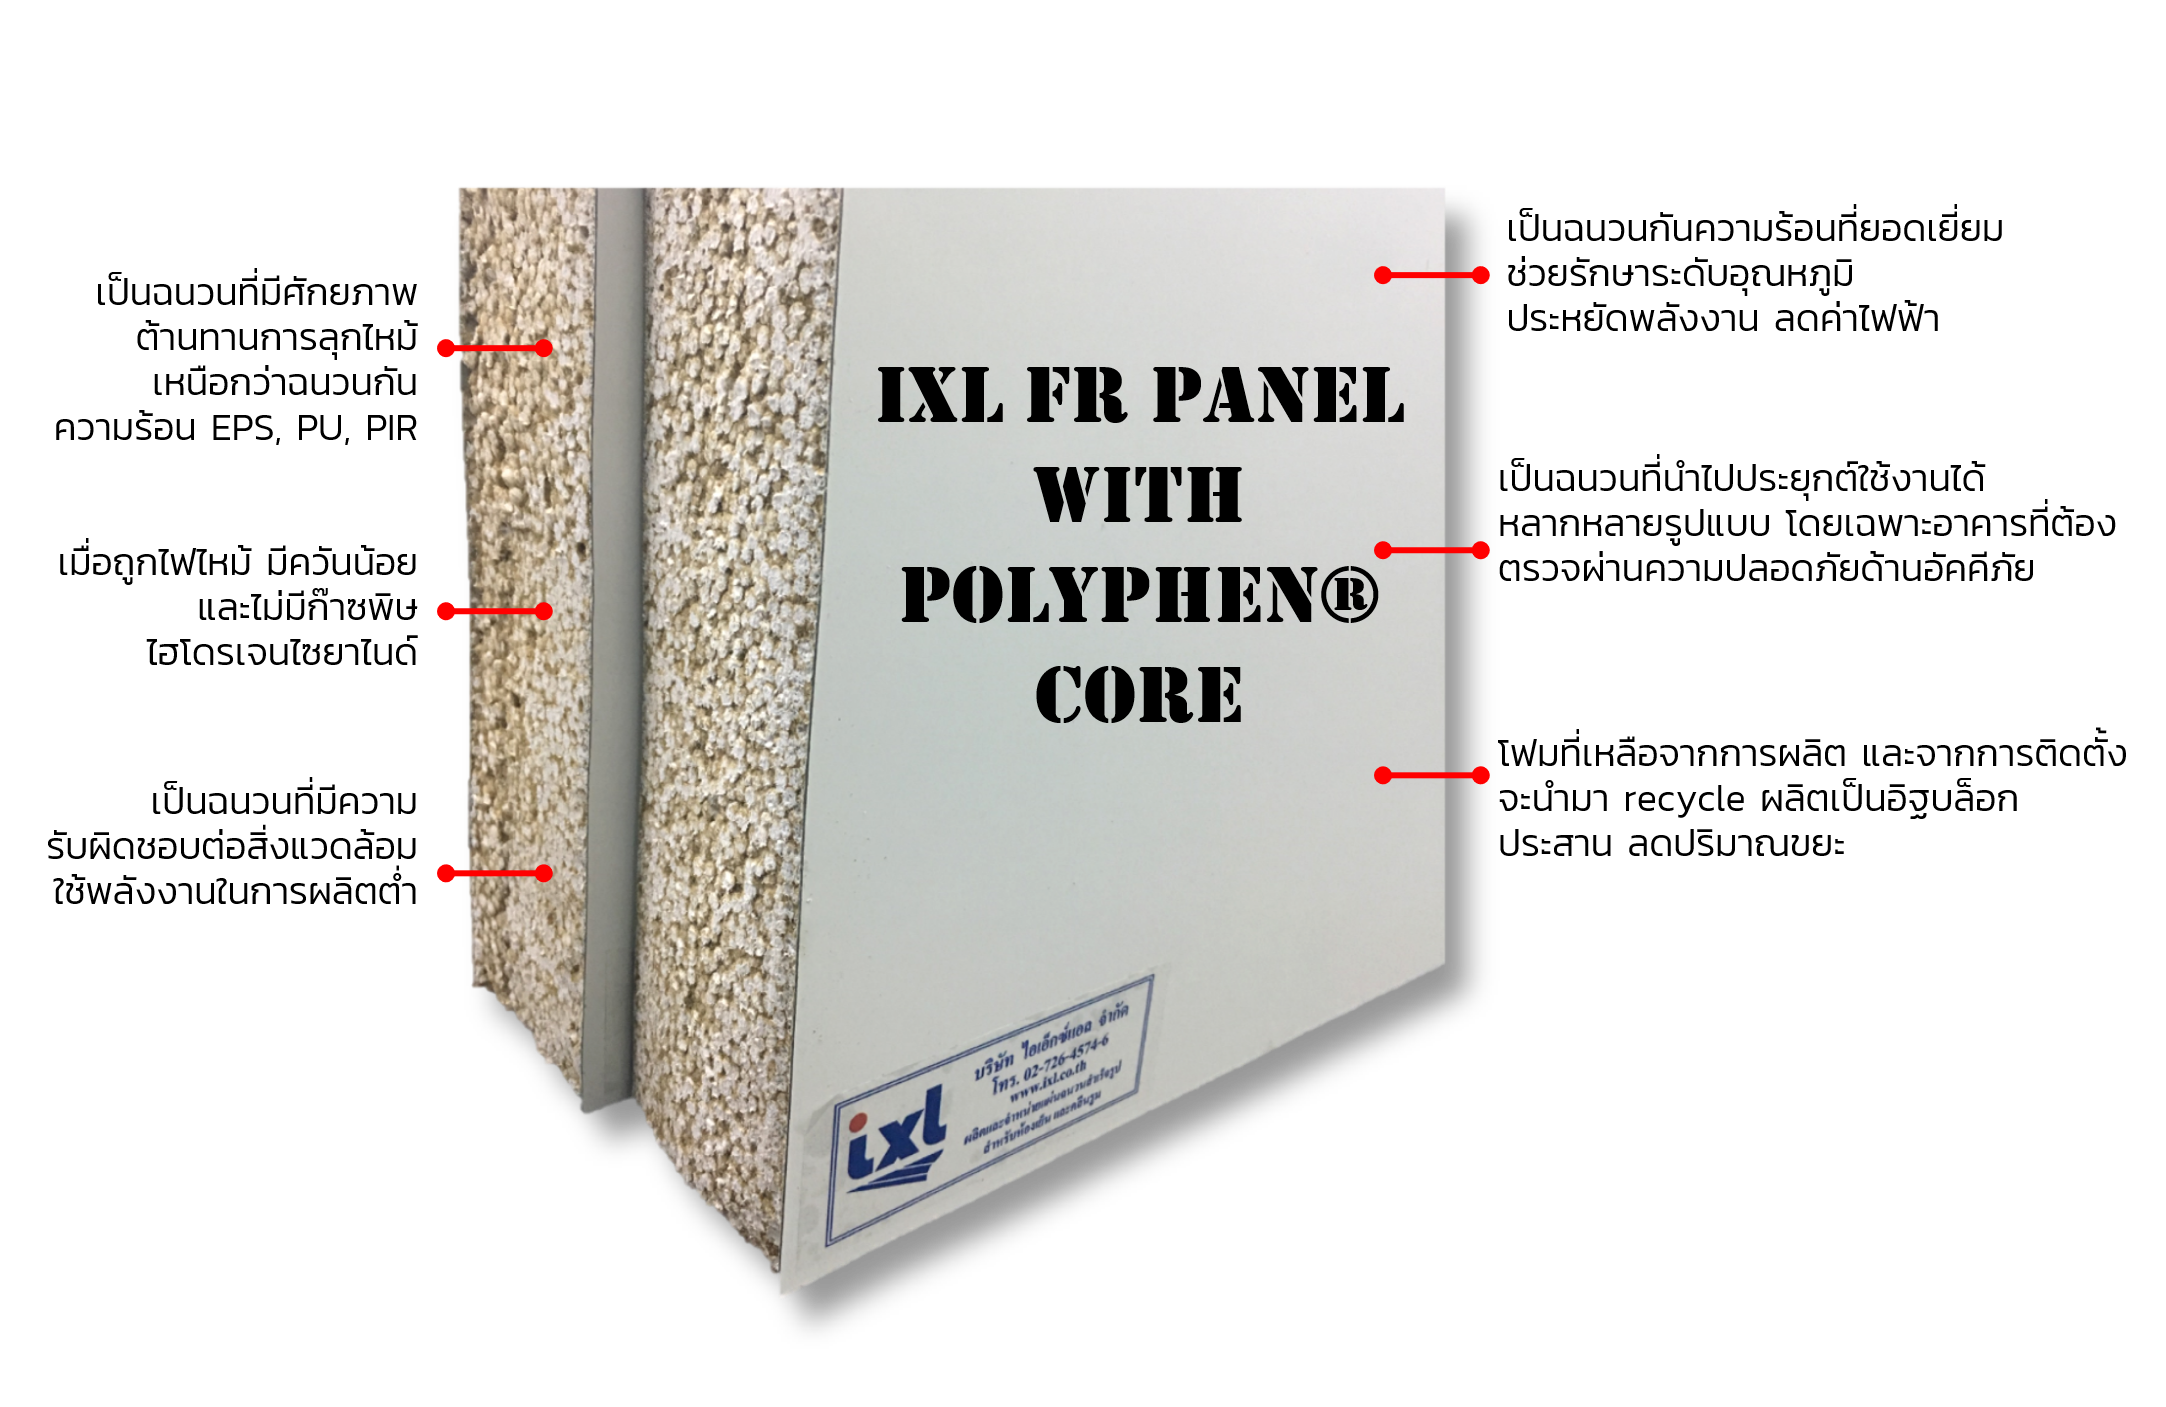 ixl fr with polyphen core